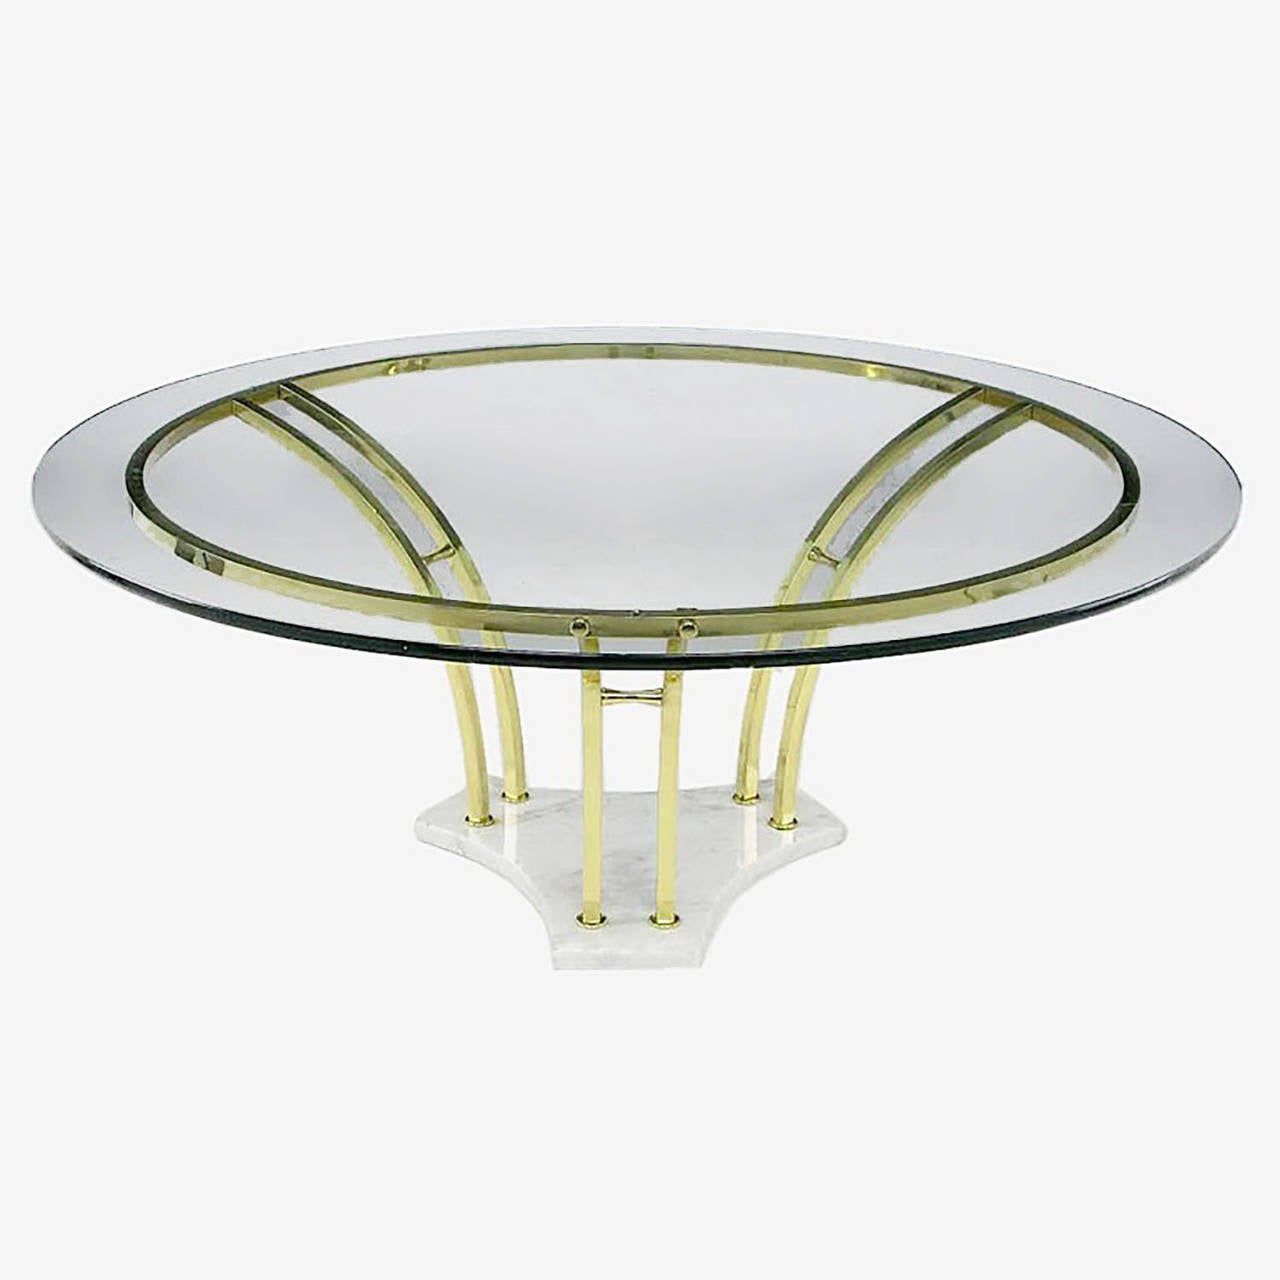 Elegant brass and carrara marble round coffee table for for Round coffee tables for sale